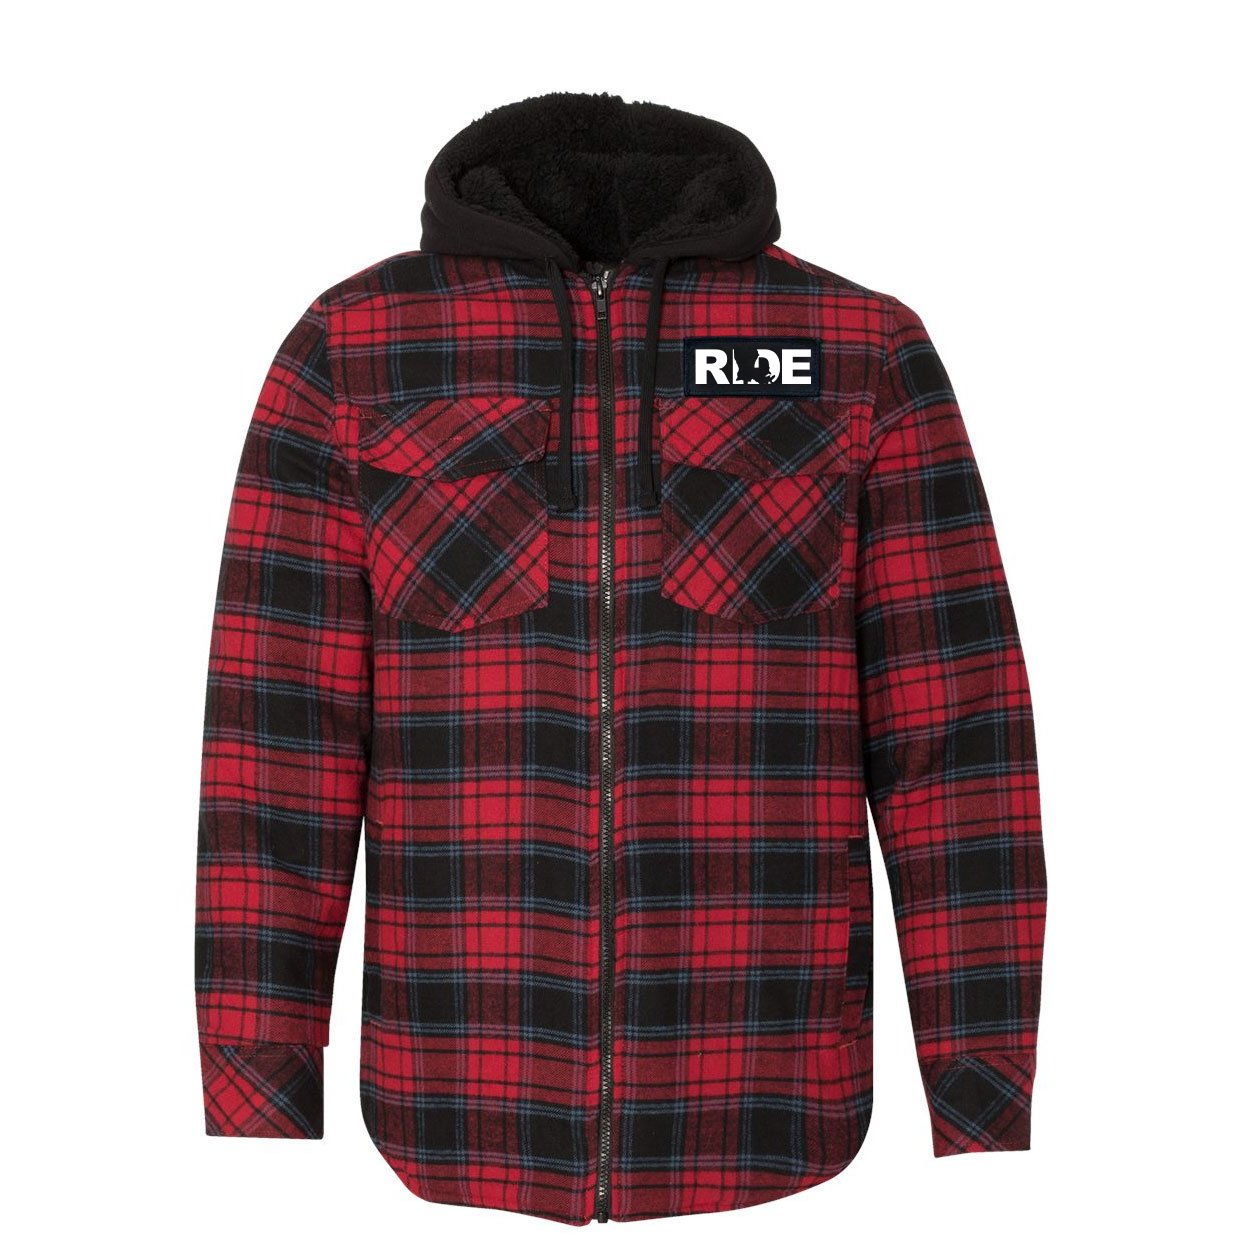 Ride Louisiana Classic Unisex Full Zip Woven Patch Hooded Flannel Jacket Red/Black Buffalo (White Logo)